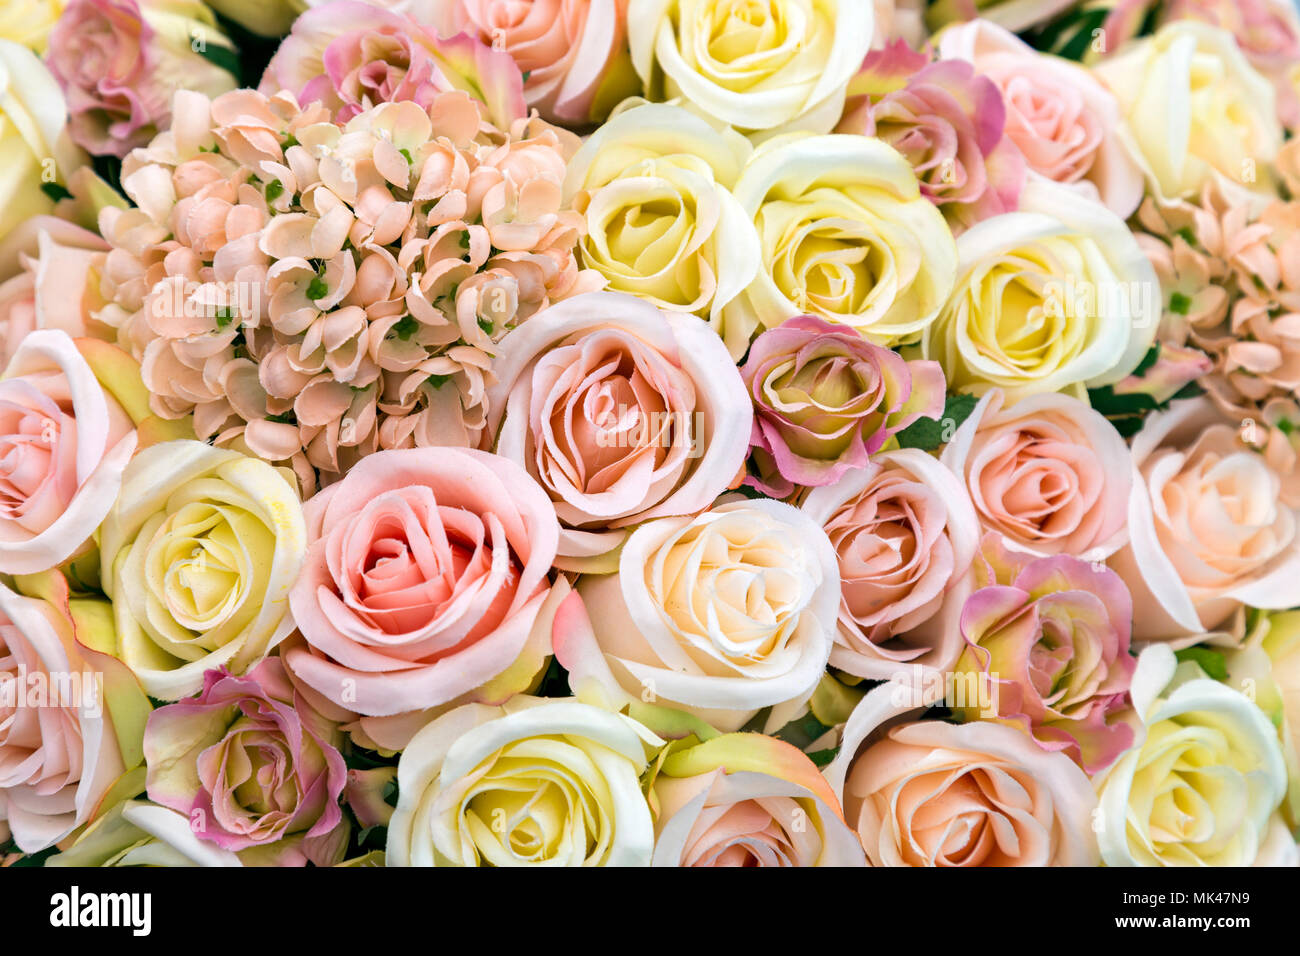 Background Of Light Pastel Flowers And Roses In Pink And Yellow